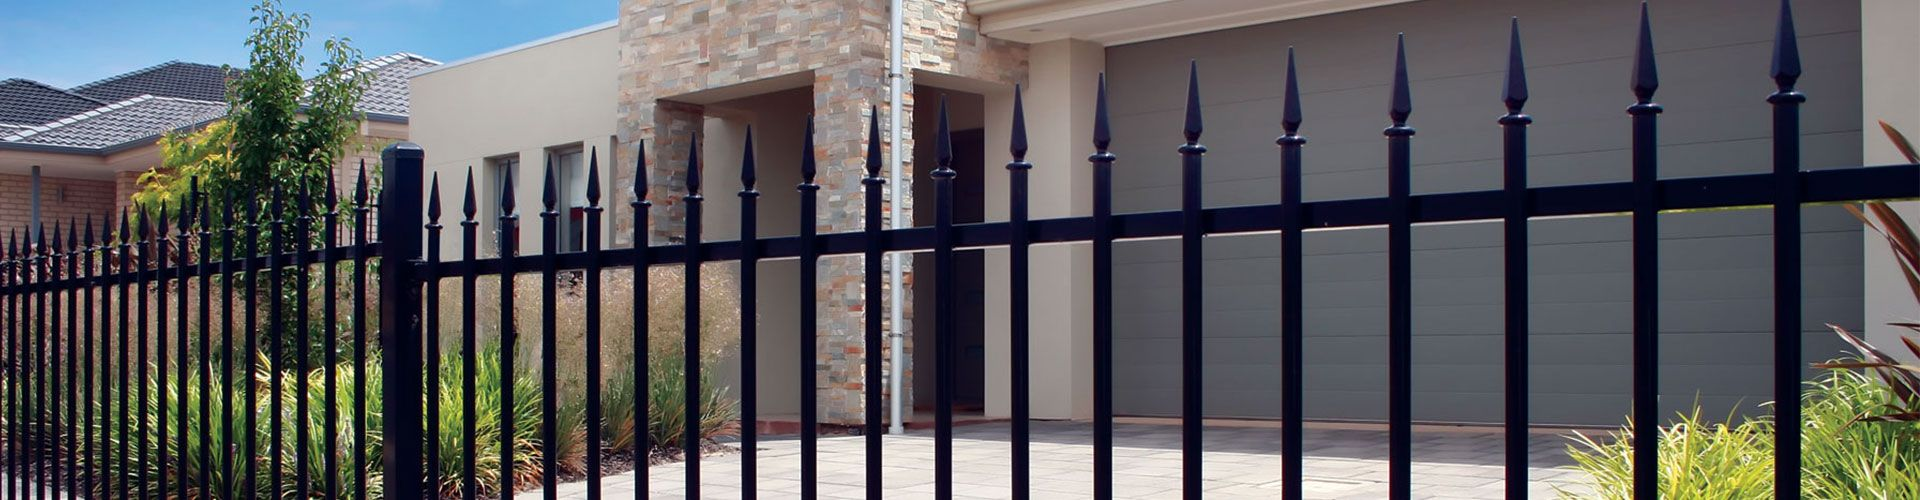 The Fencing Factory | Your one stop shop for all your